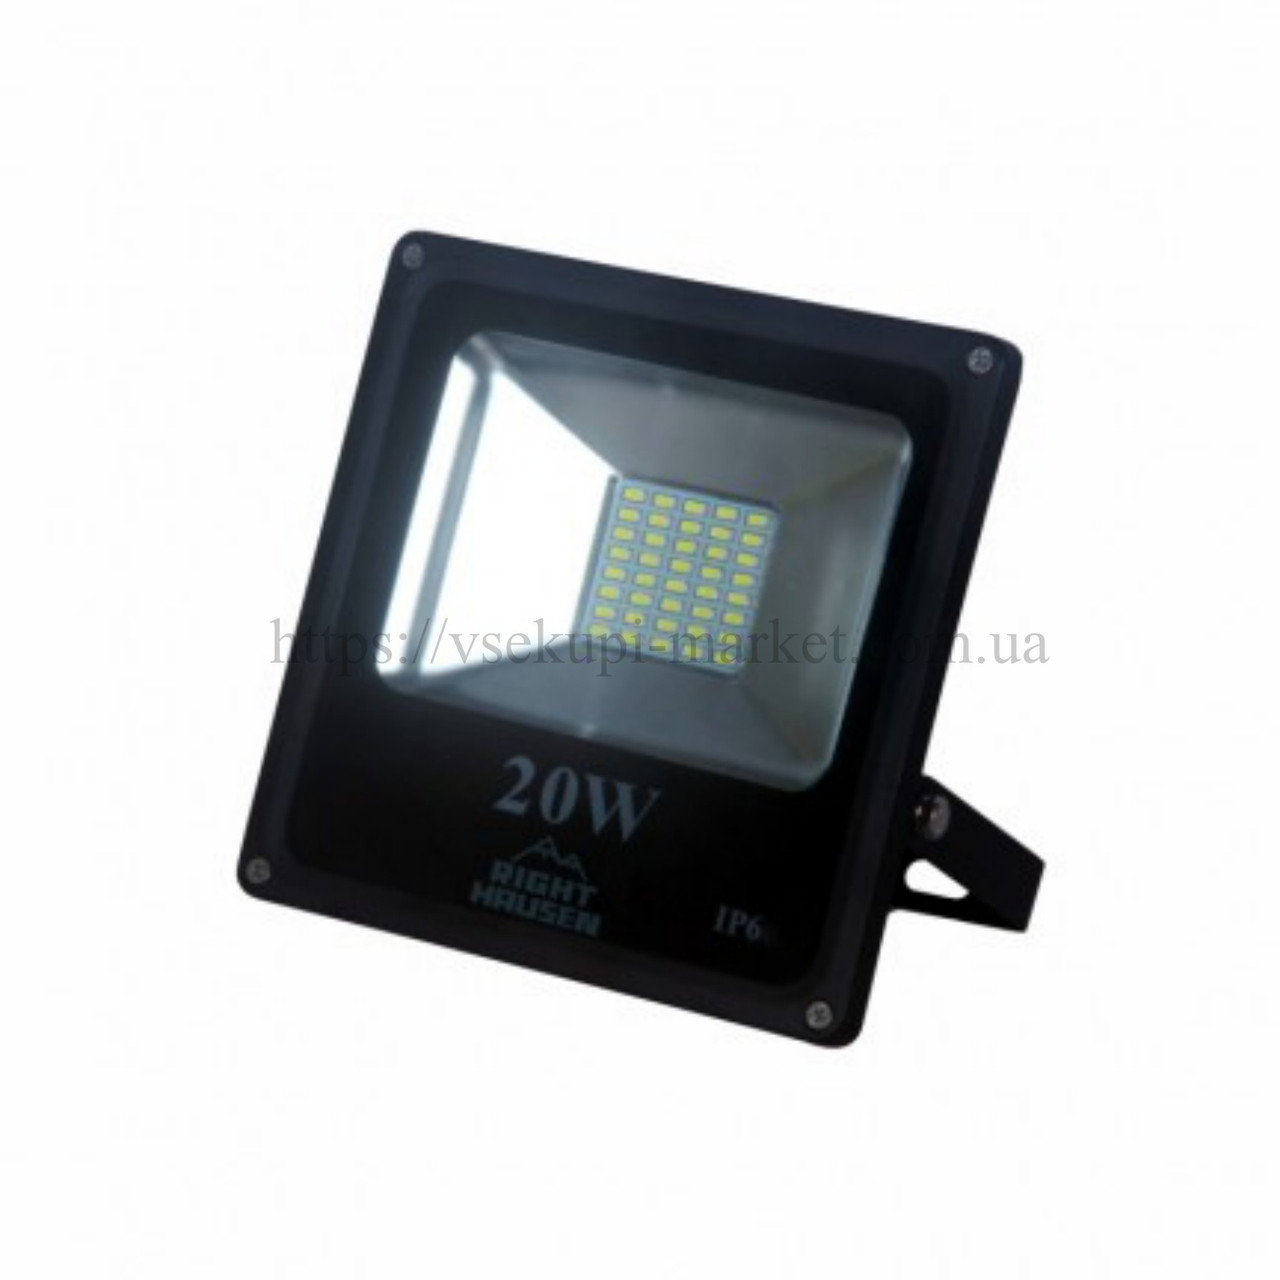 Прожектор RIGHT HAUSEN STANDARD LED 20W 6500K IP65 черный HN-191222N